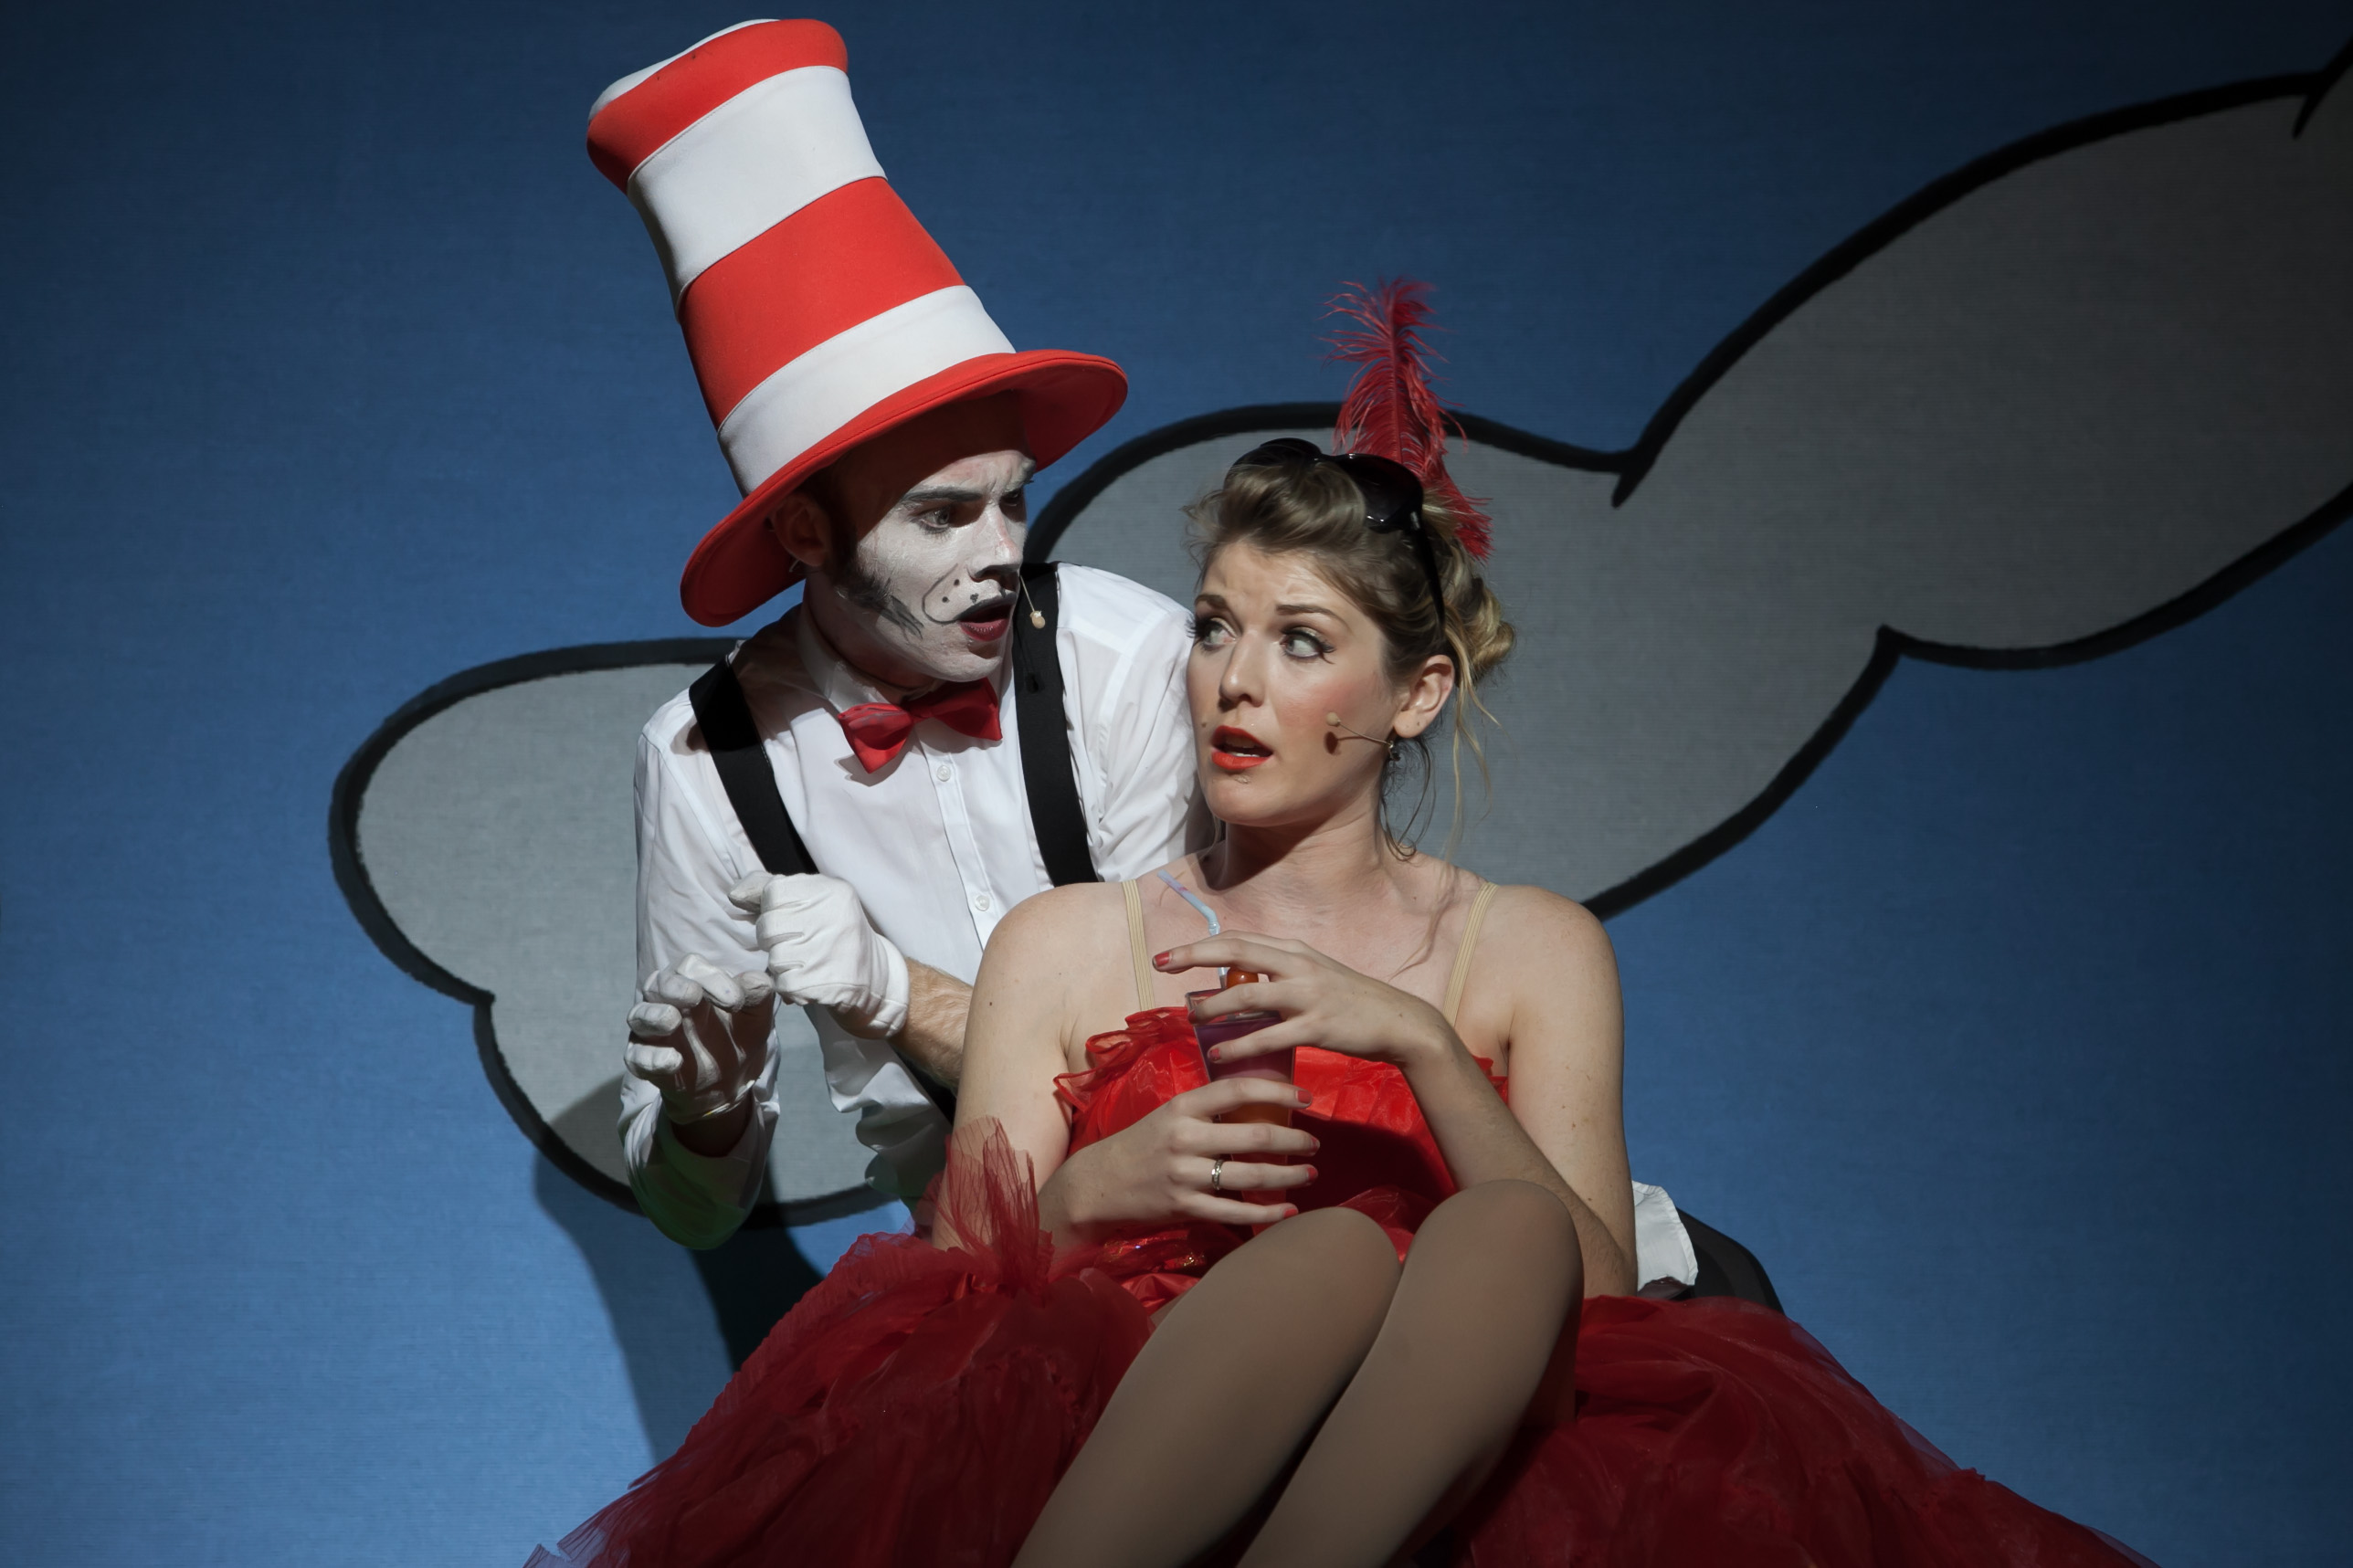 [Giveaway] The world of Dr. Seuss comes alive at Seussical the Musical!